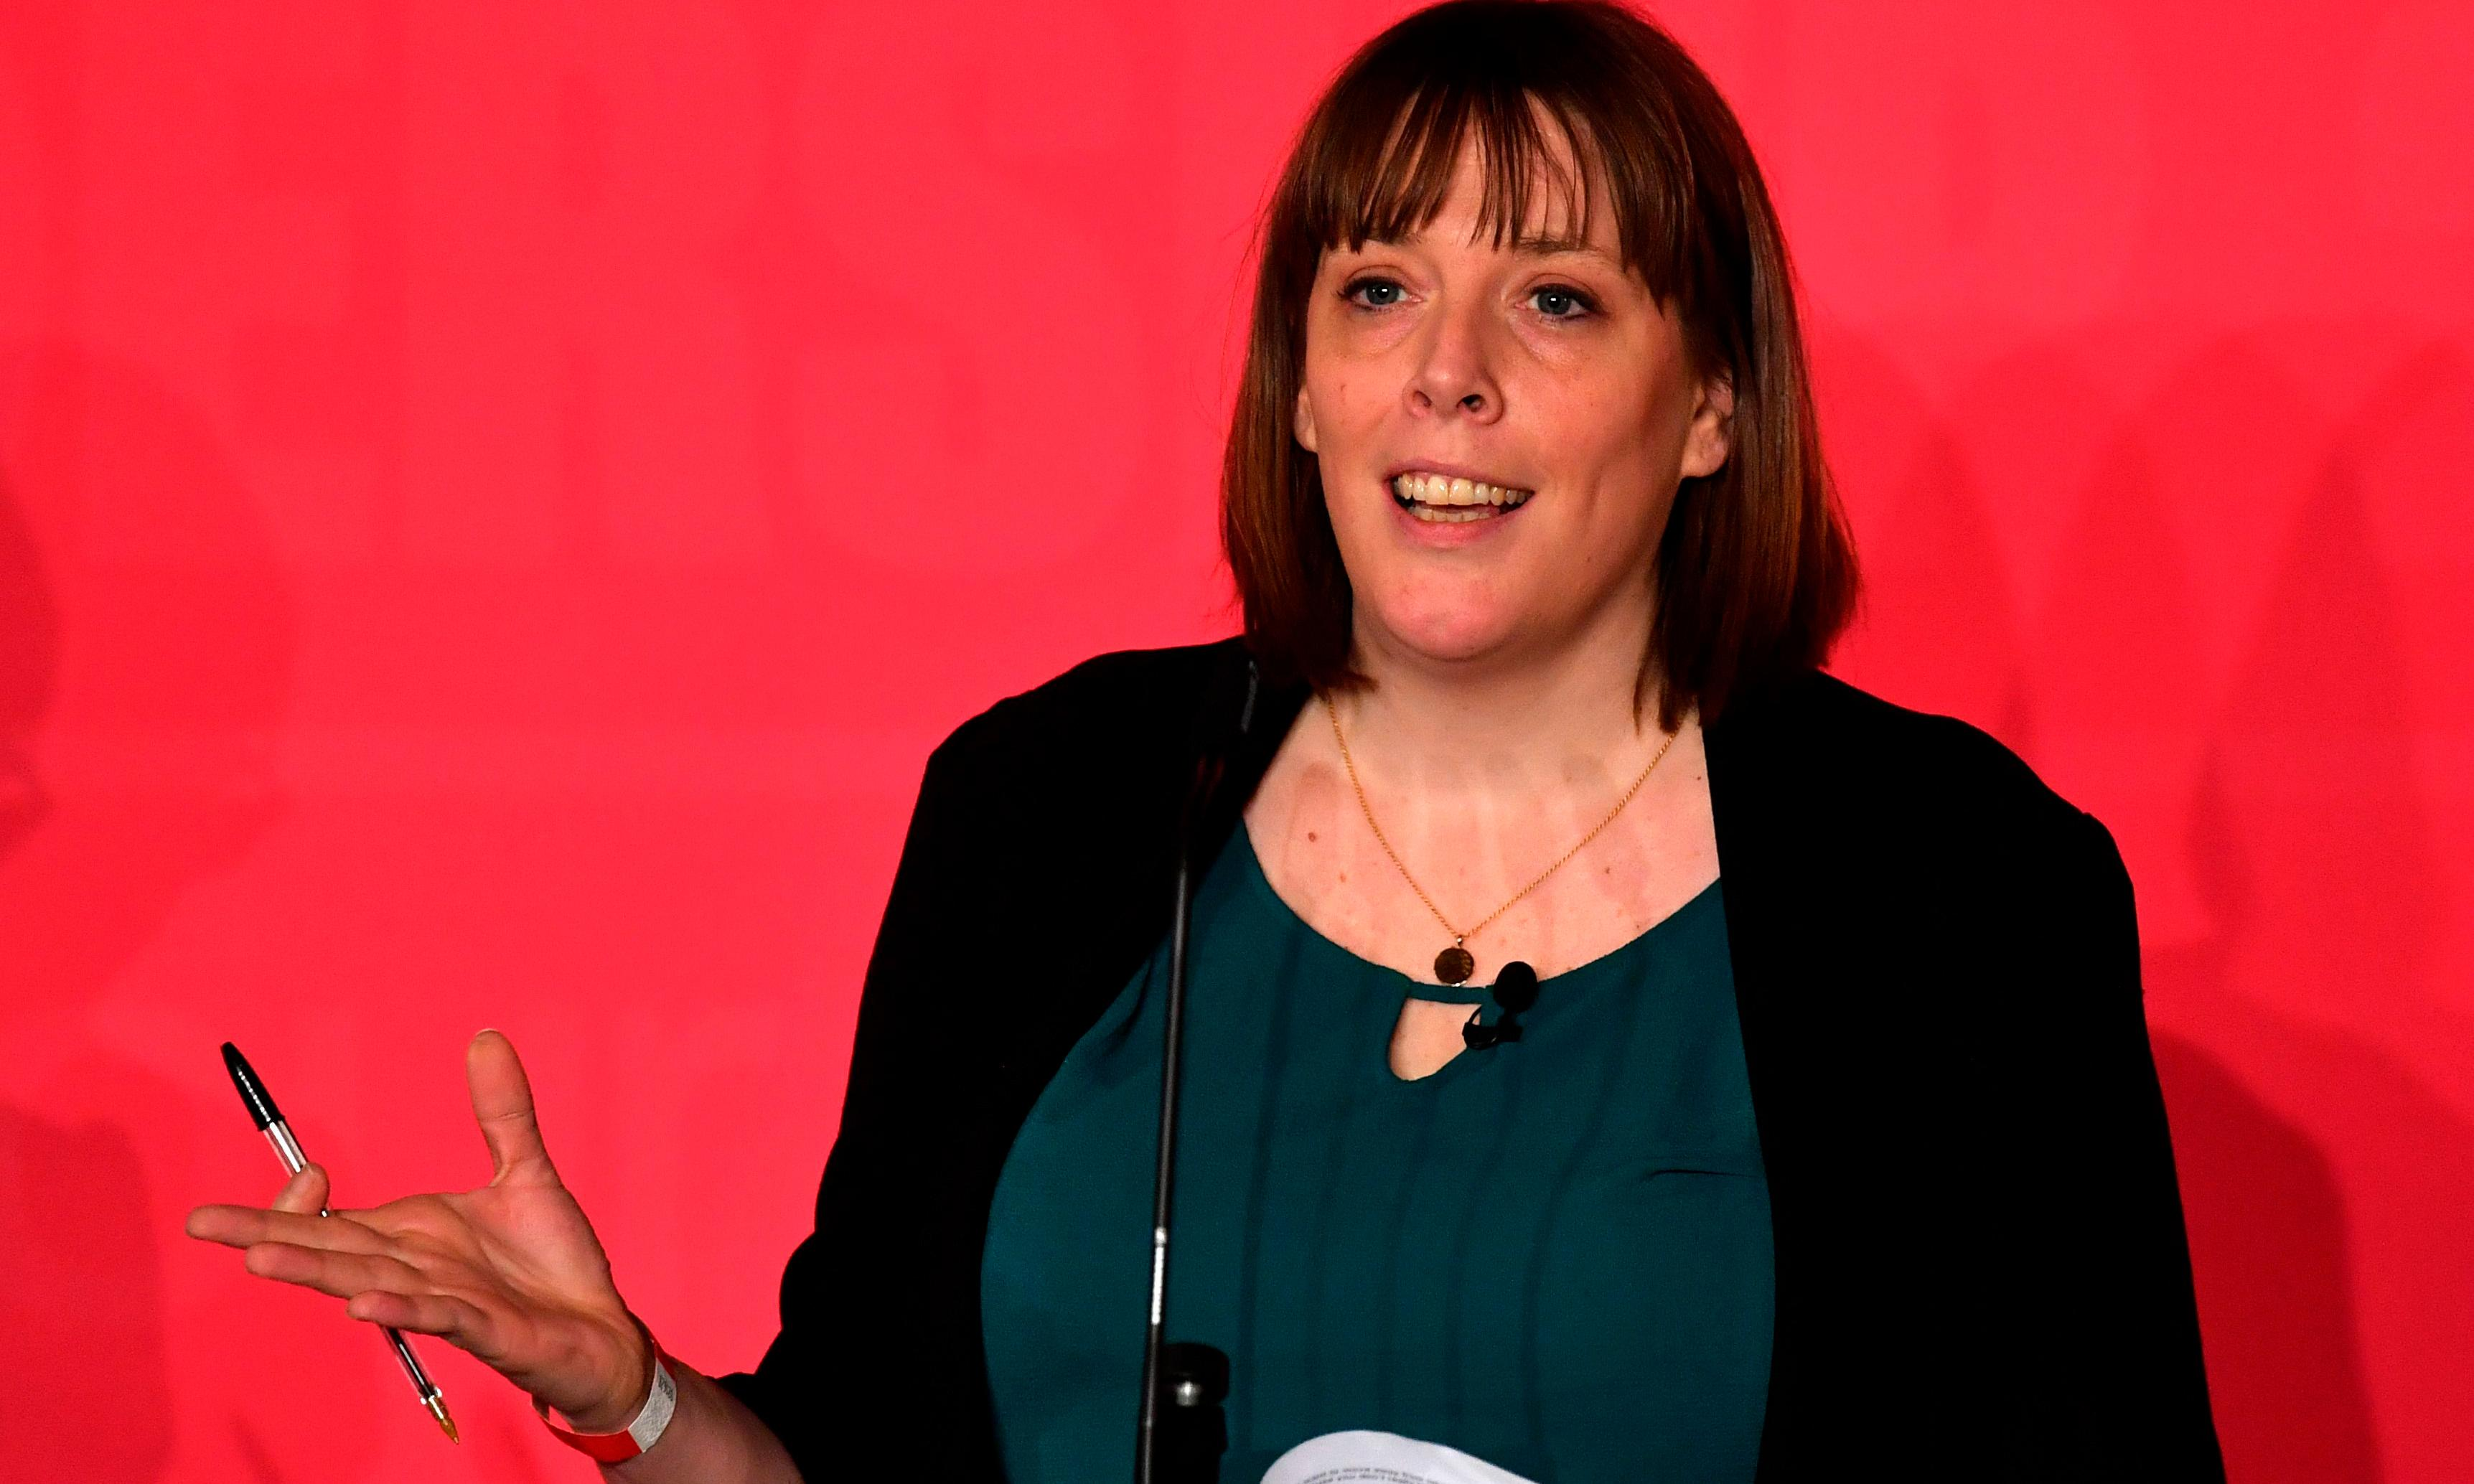 Labour leadership: Jess Phillips vows to stop acting 'statesmanlike'